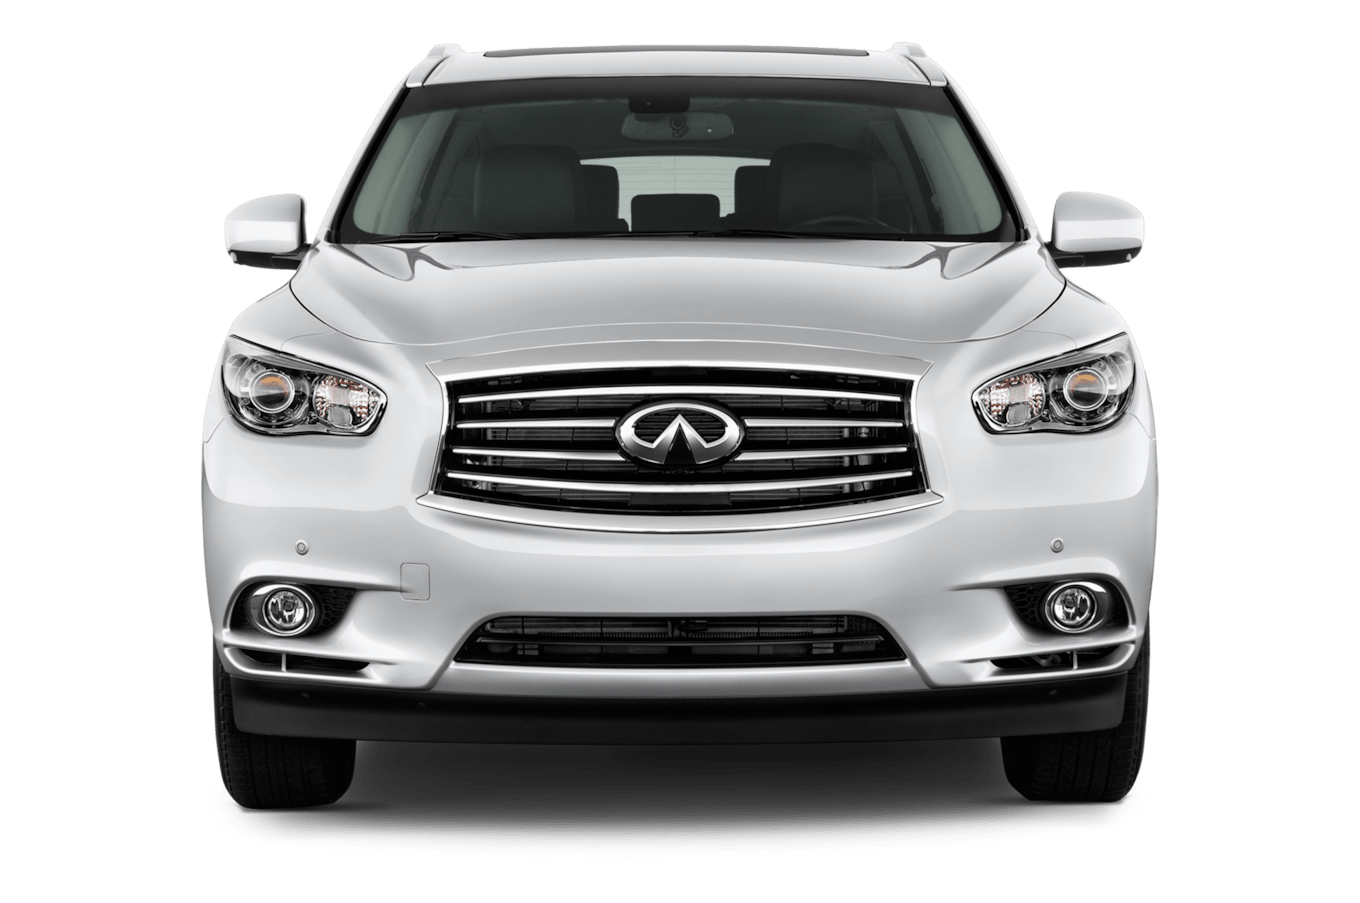 hight resolution of 2015 infiniti qx60 reviews and rating motortrend 17 49